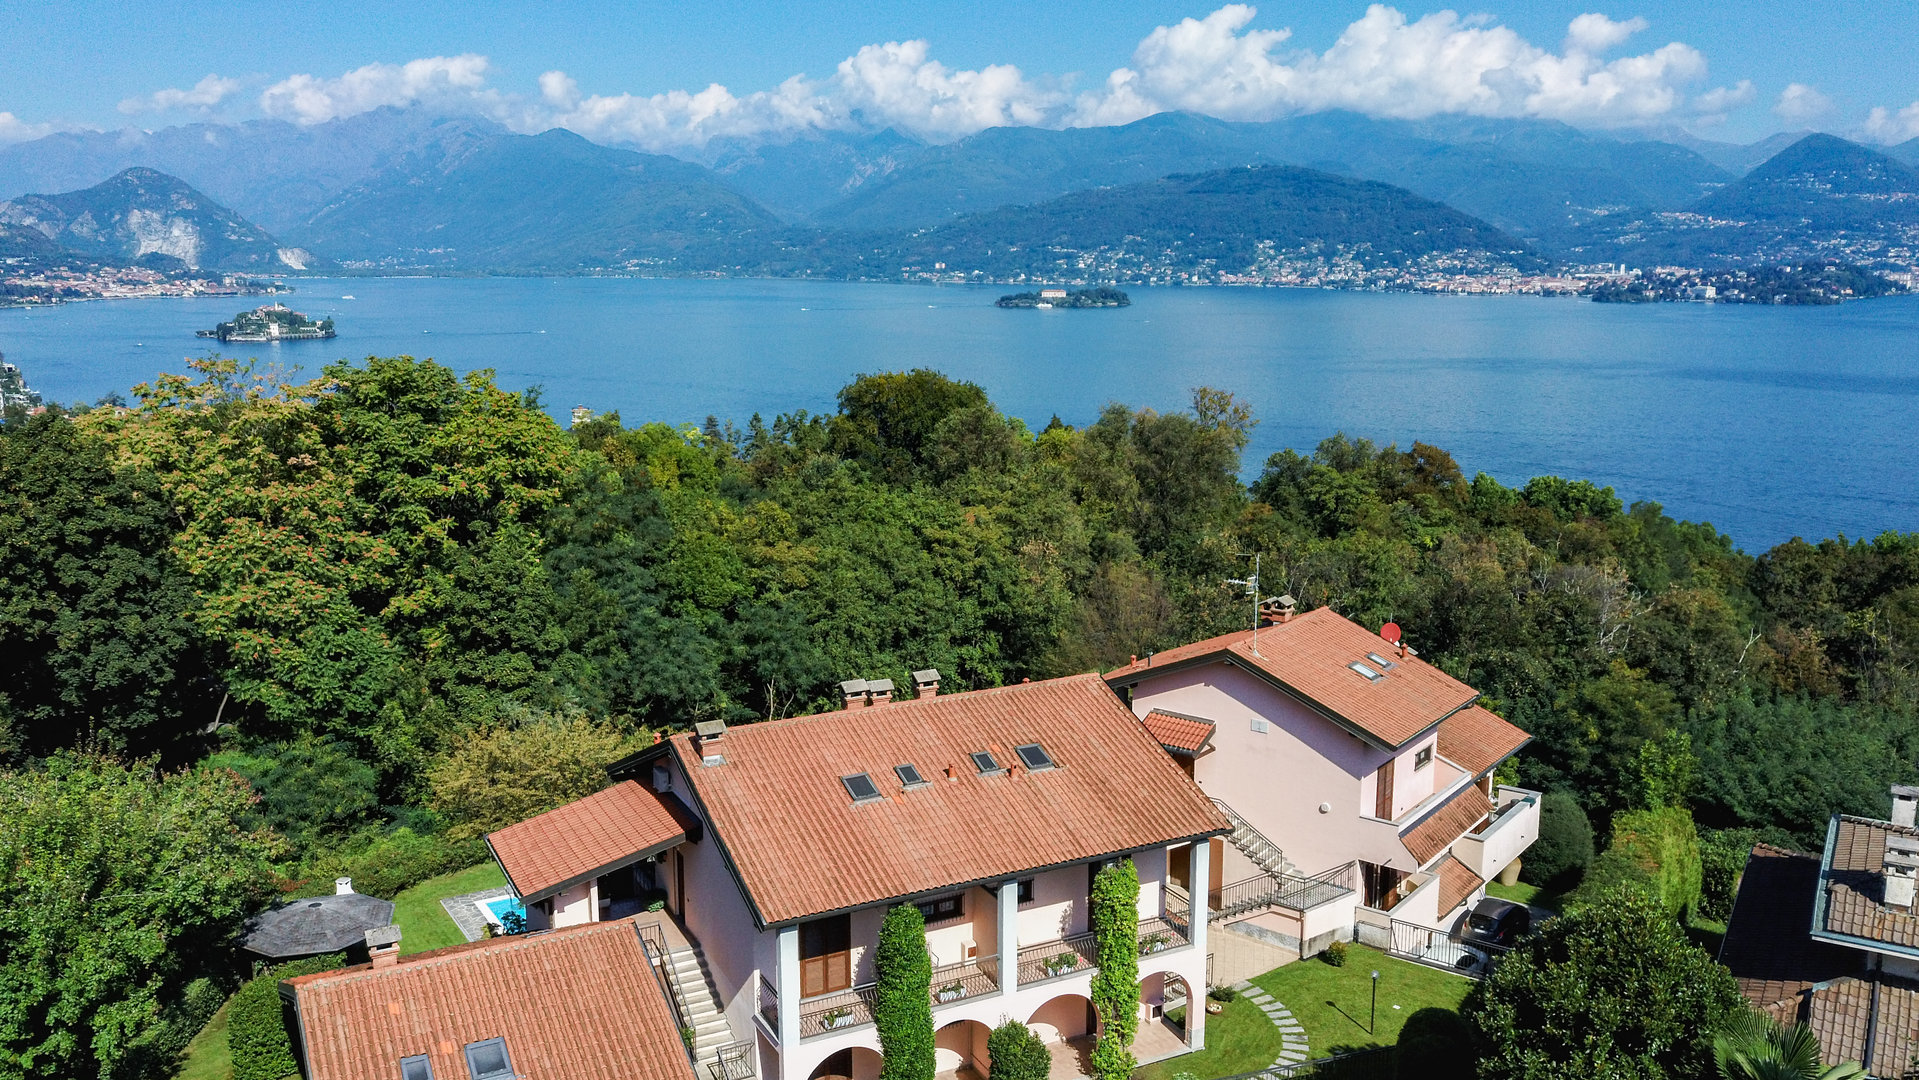 Semi-detached house for sale in Stresa - lake view